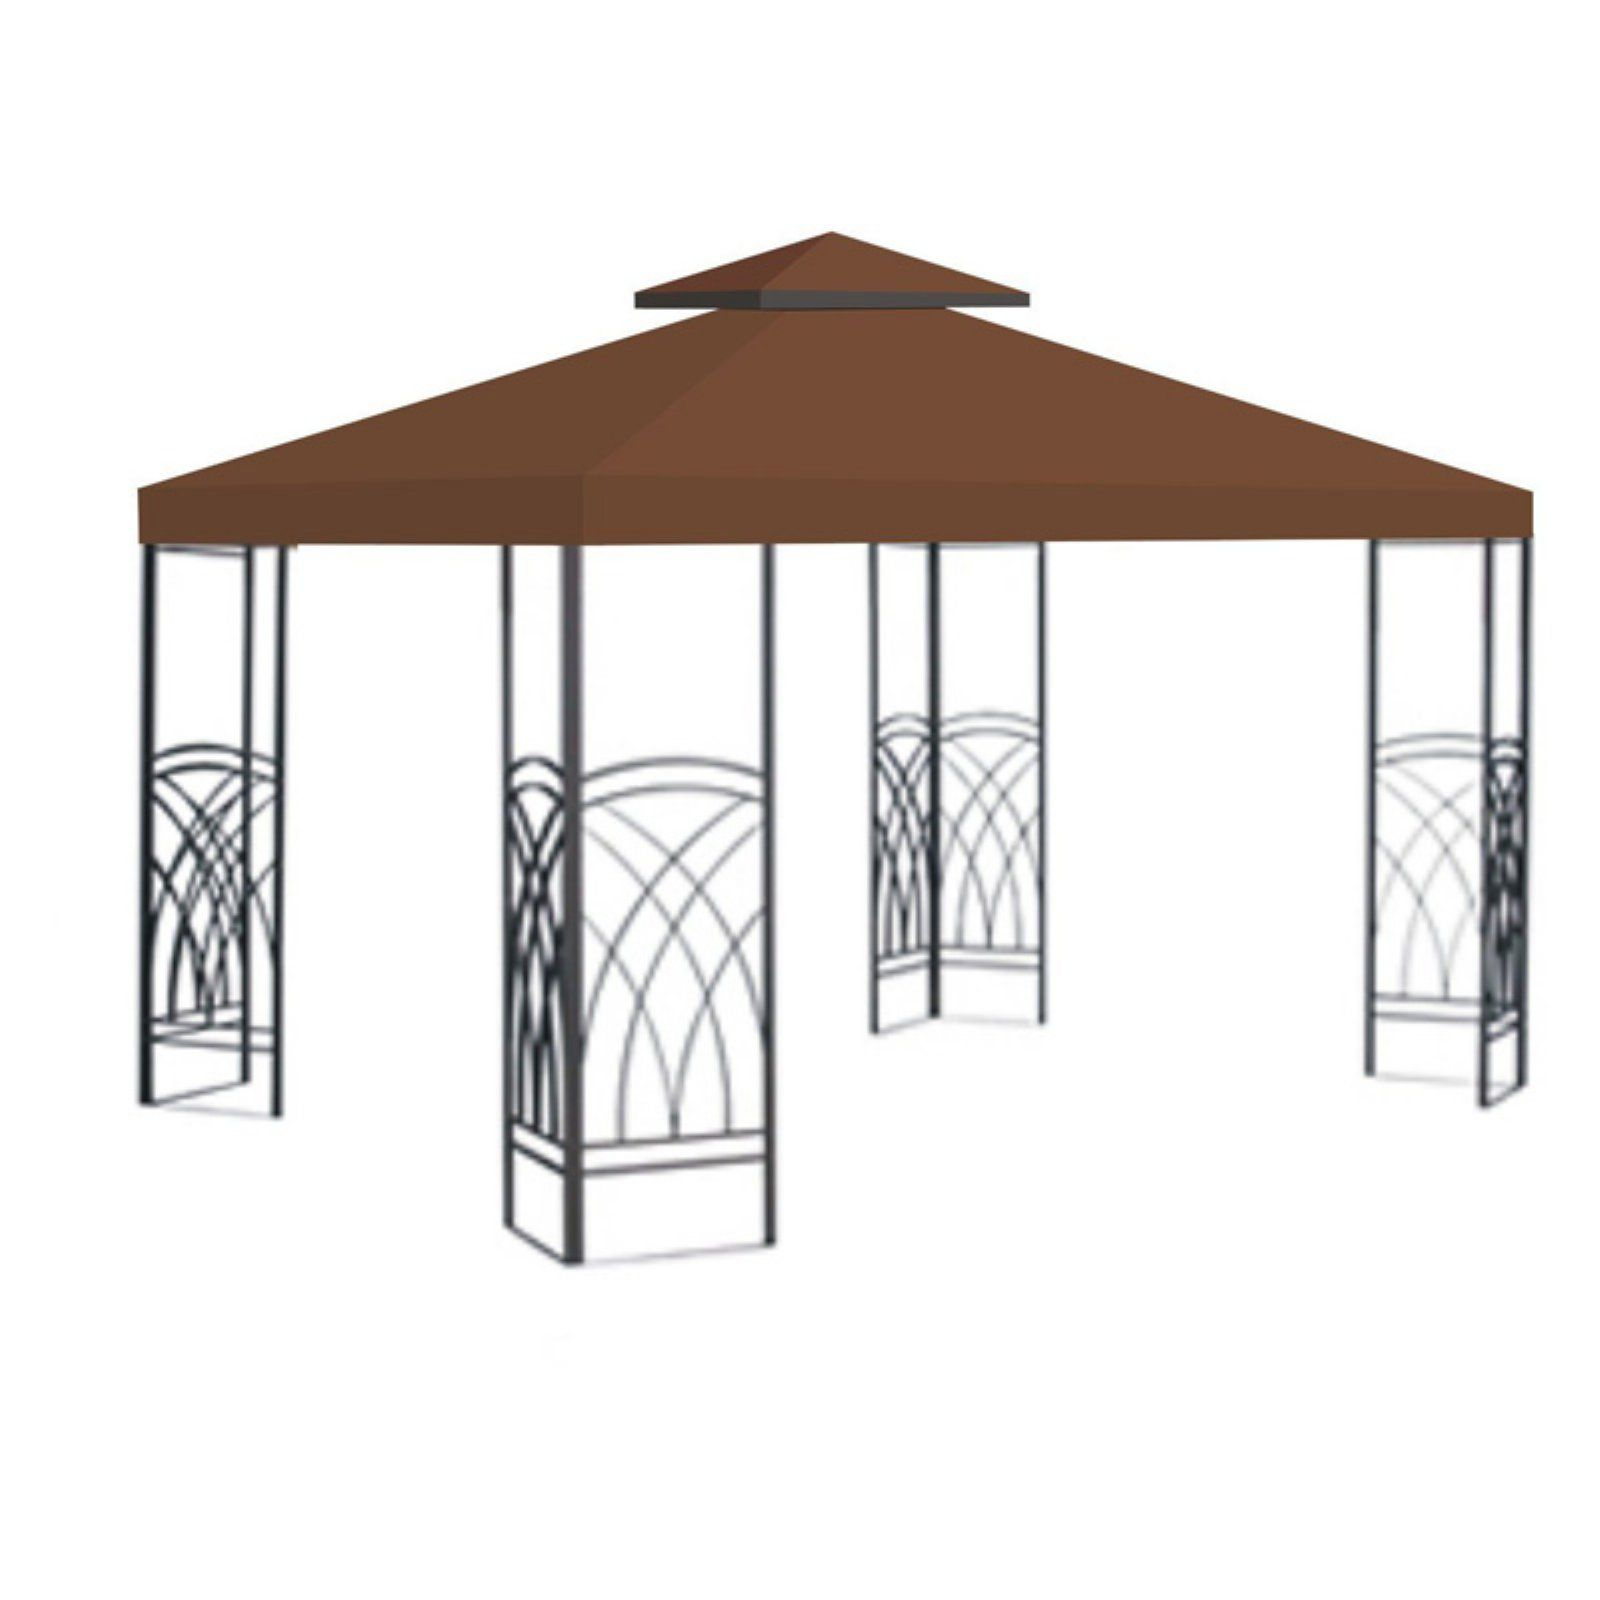 Sunrise 10 X 10 Ft Gazebo Replacement Double Tier Canopy Cover